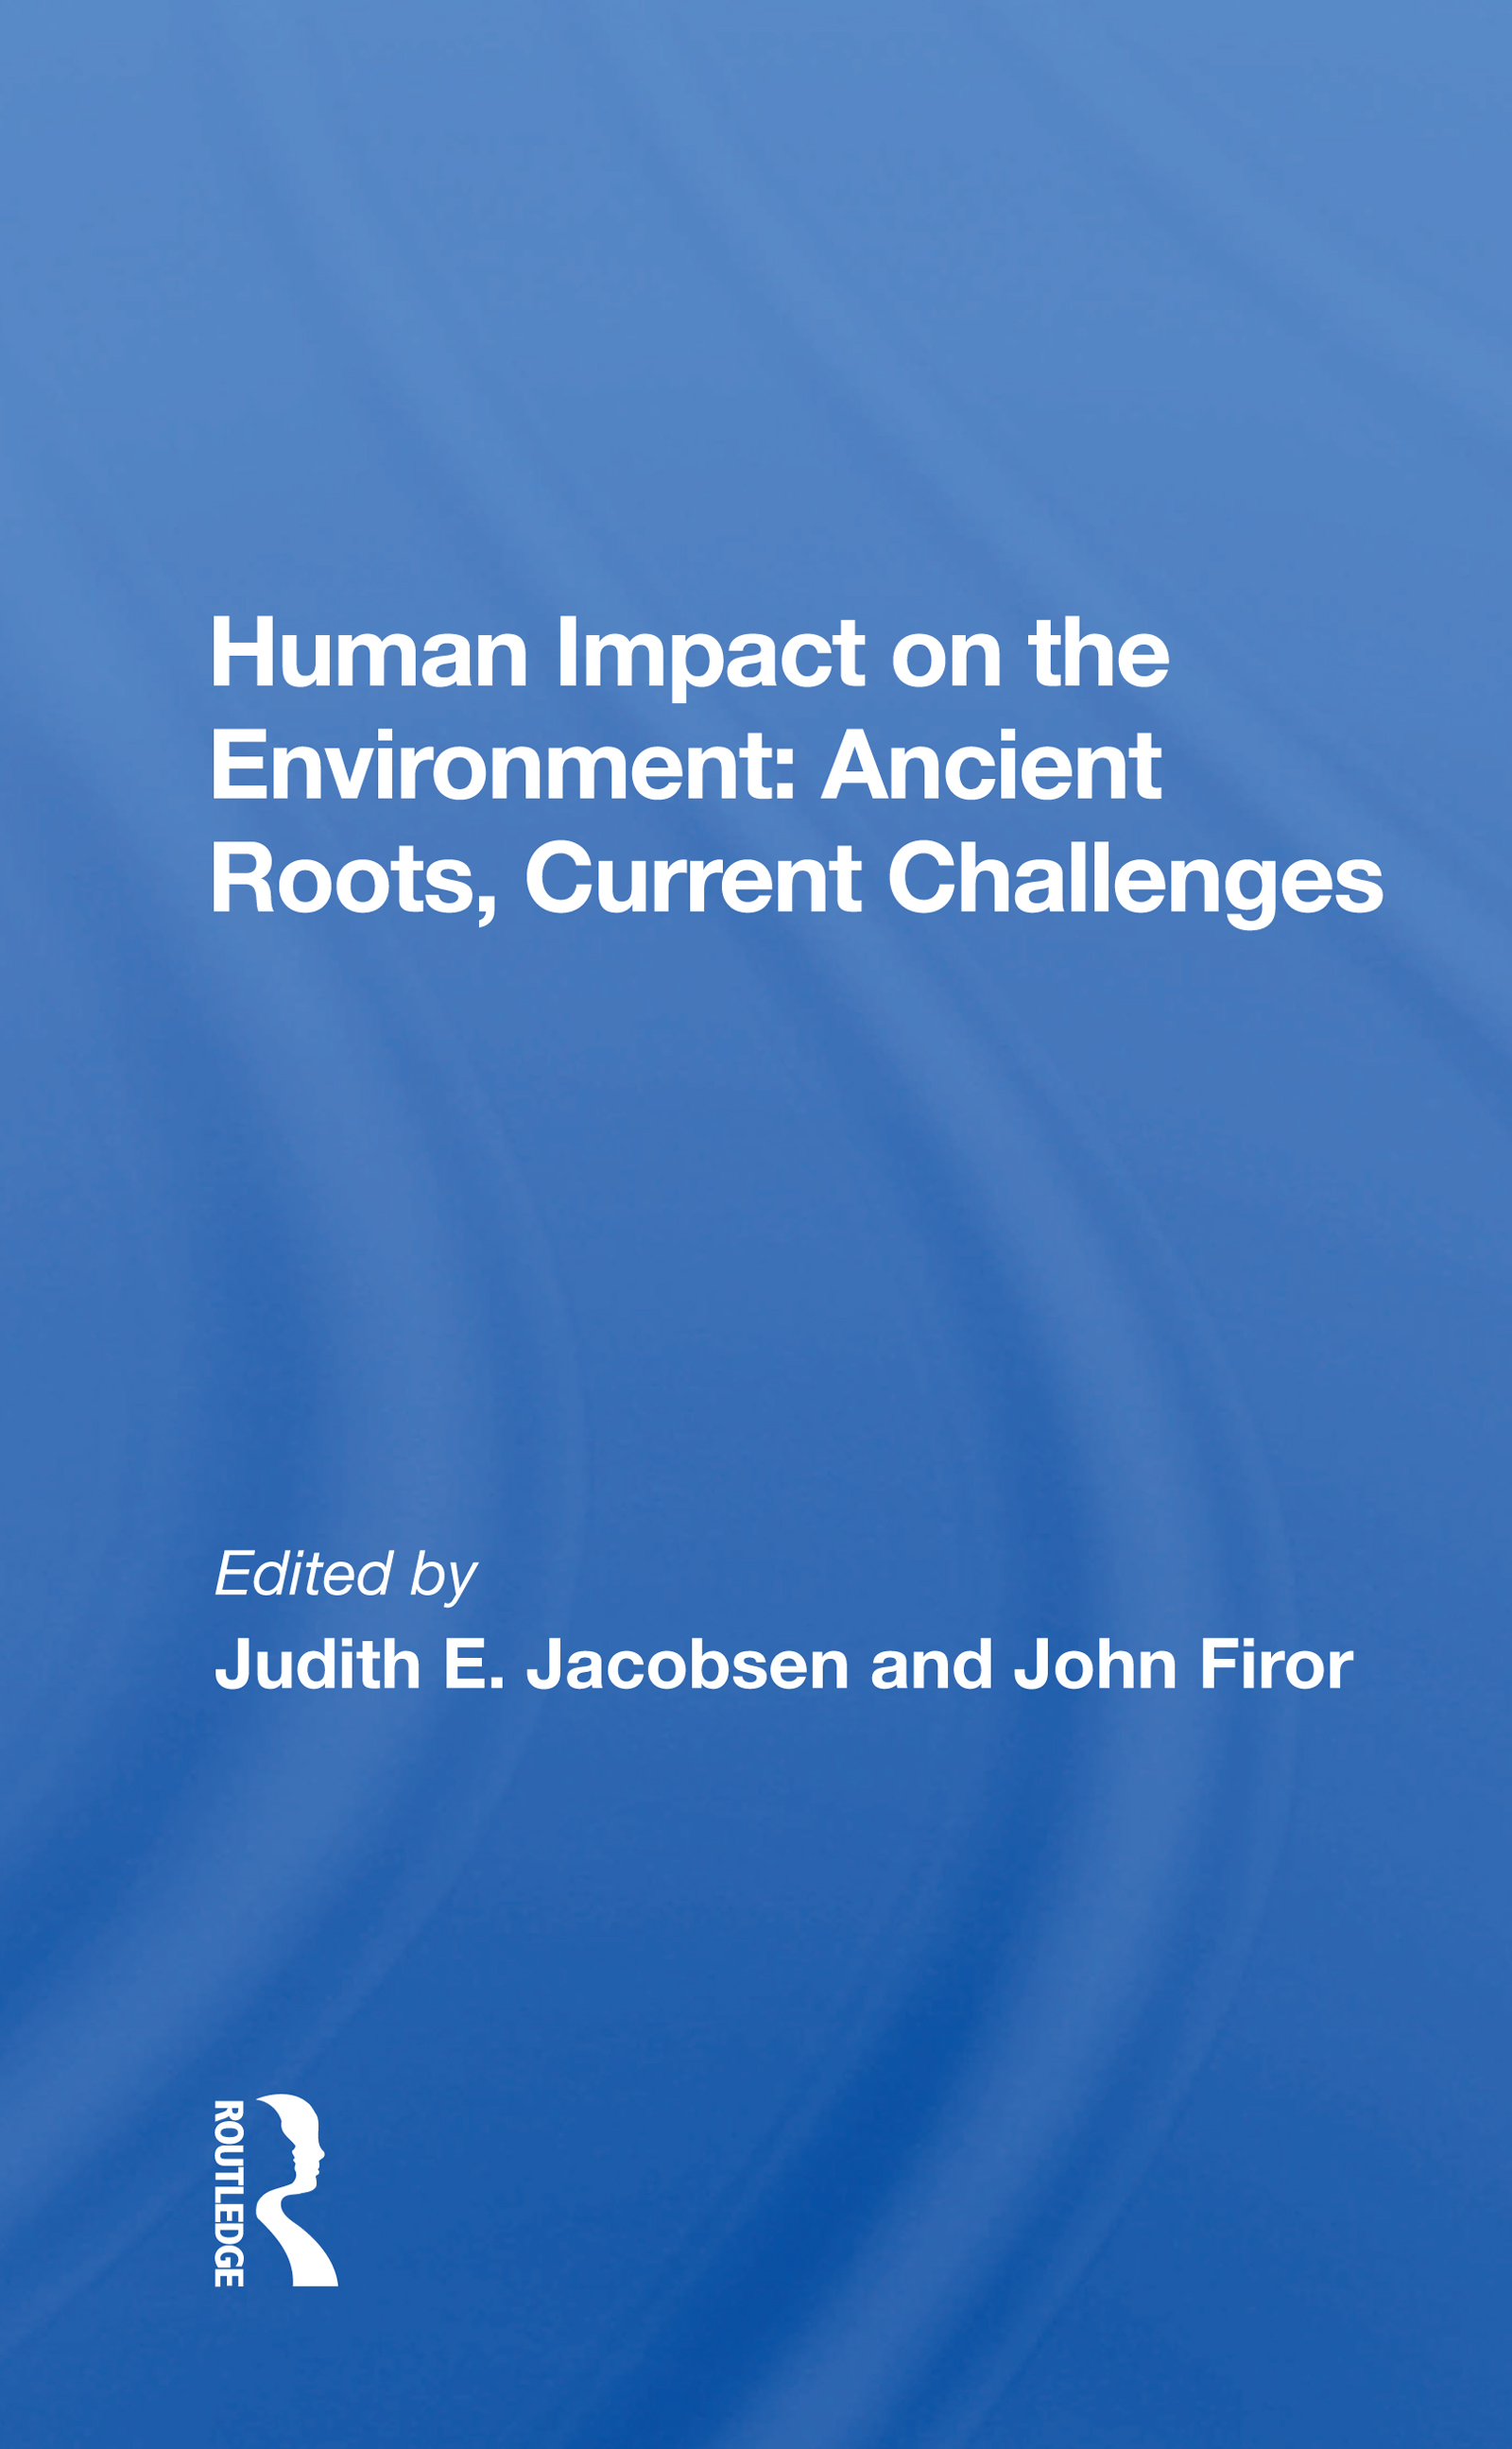 Human Impact on the Environment: Ancient Roots, Current Challenges